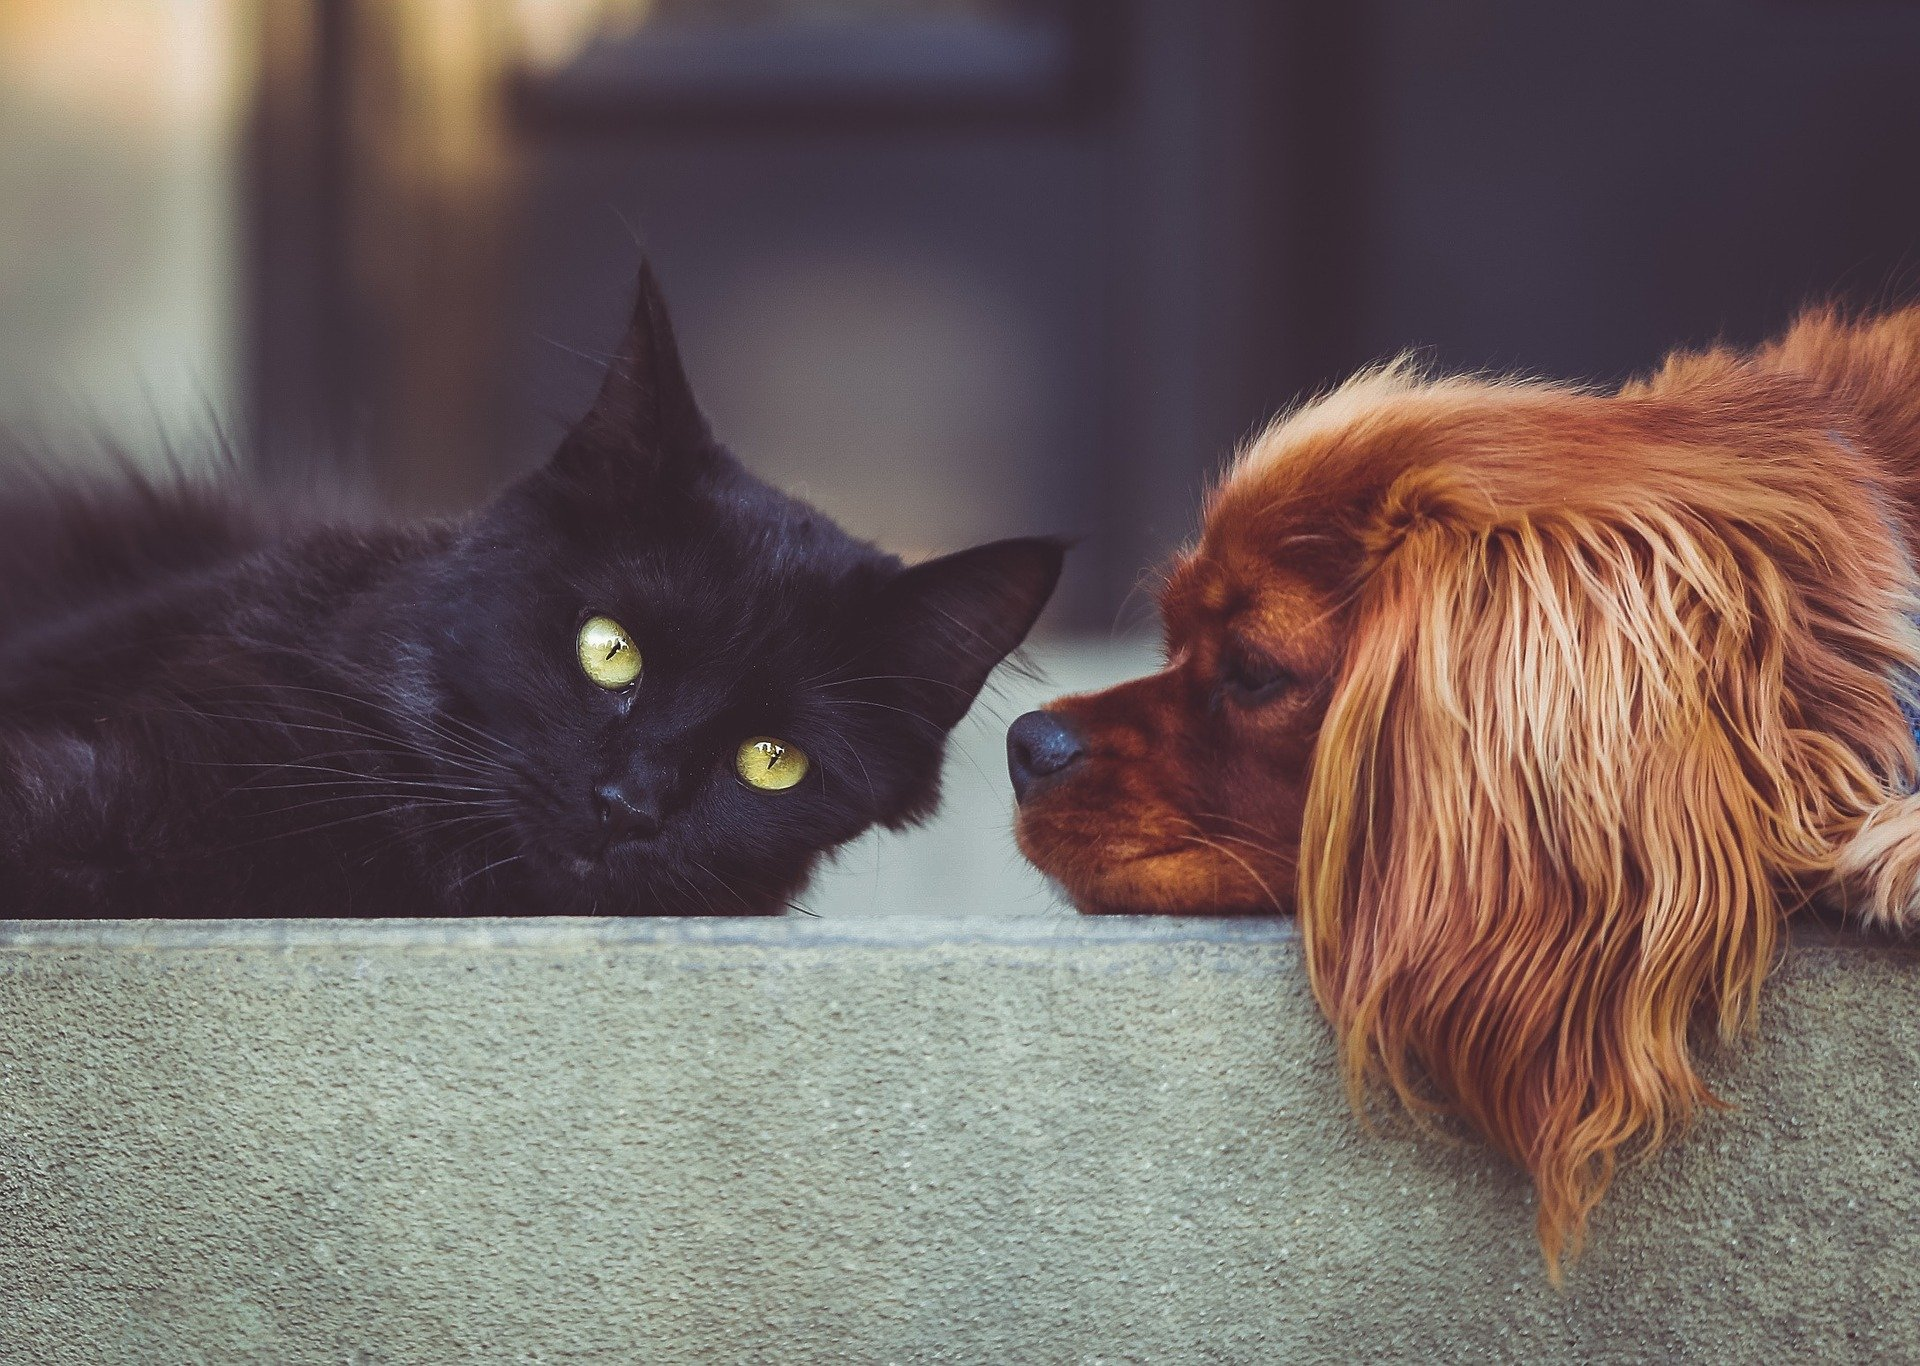 a black cat leaning next to a brown dog